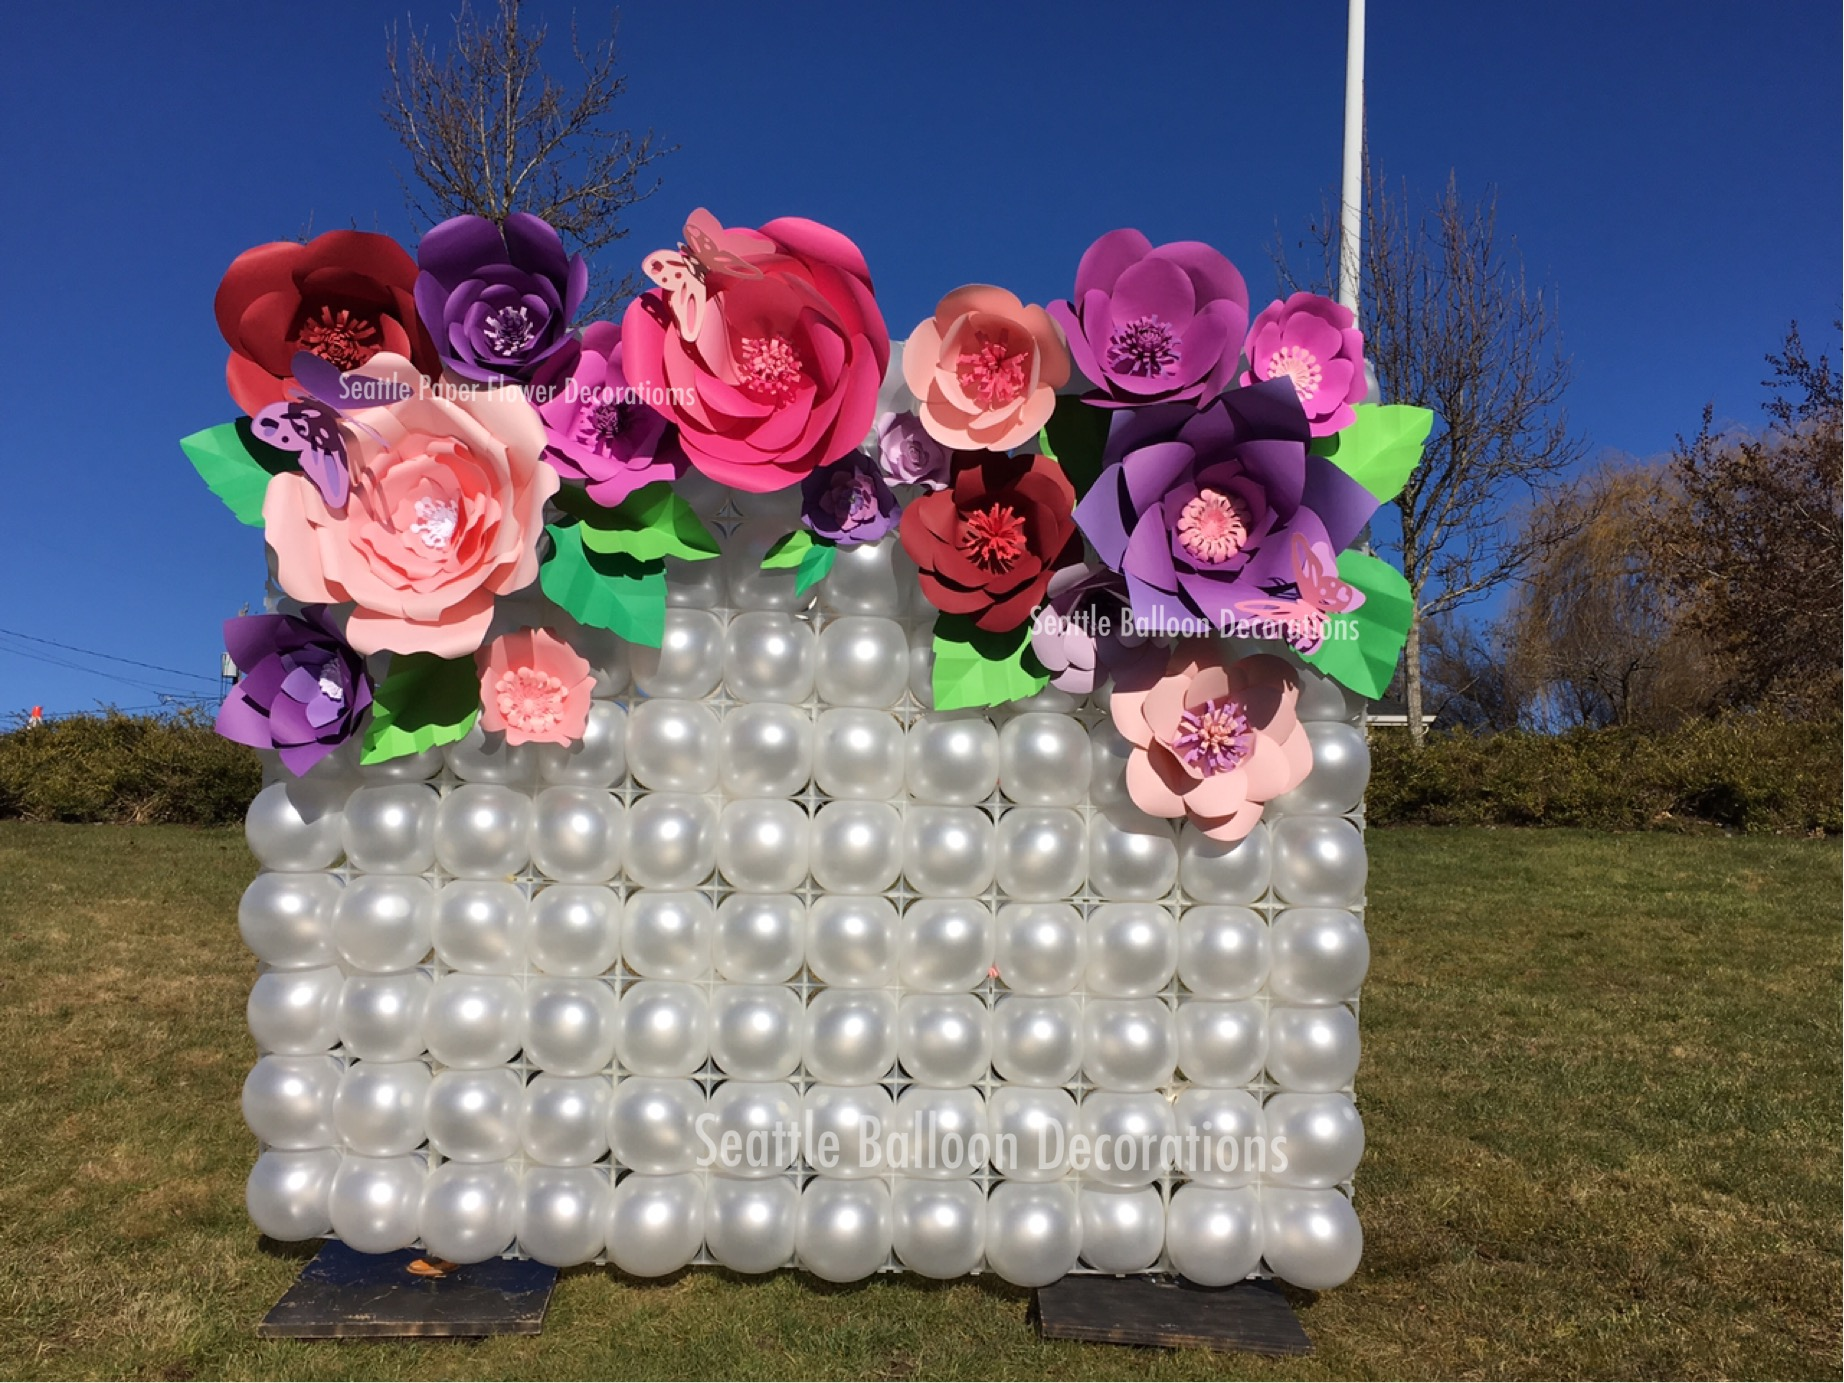 Happy Birthday Flowers And Balloons ~ Seattle balloon decorations balloon & paper flower decorations